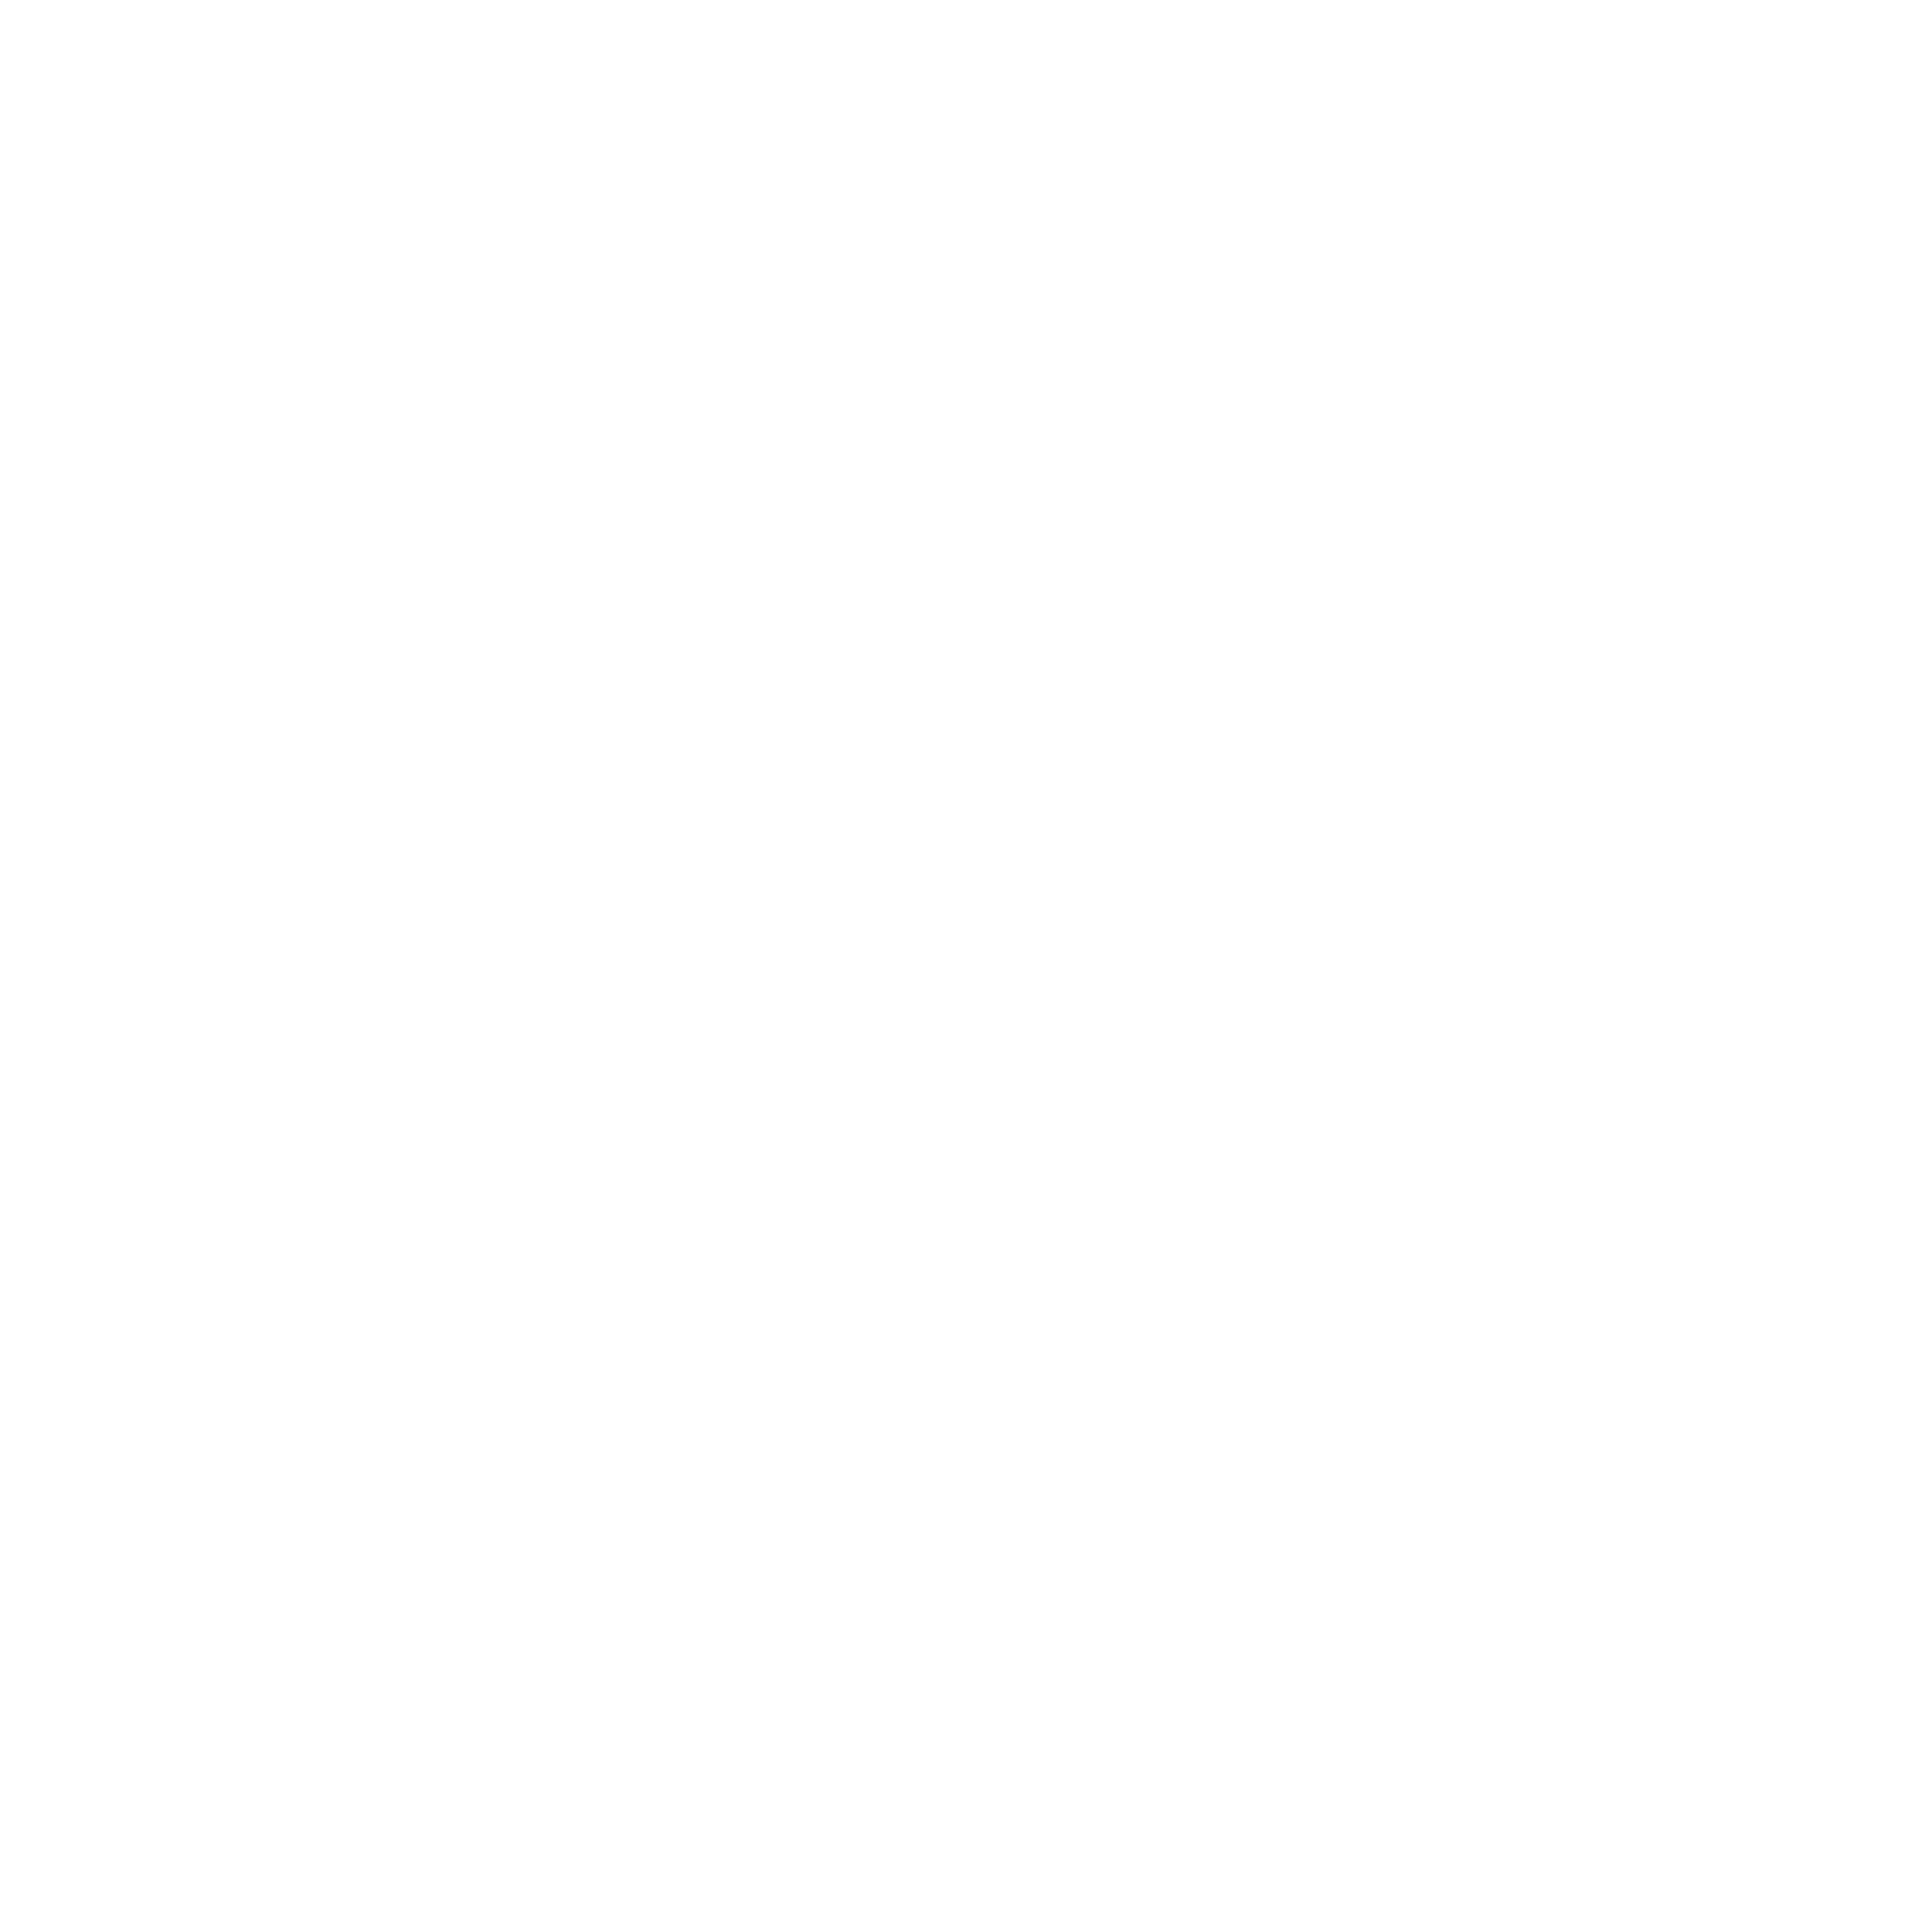 Windows 10 png icon. Icons free in simple